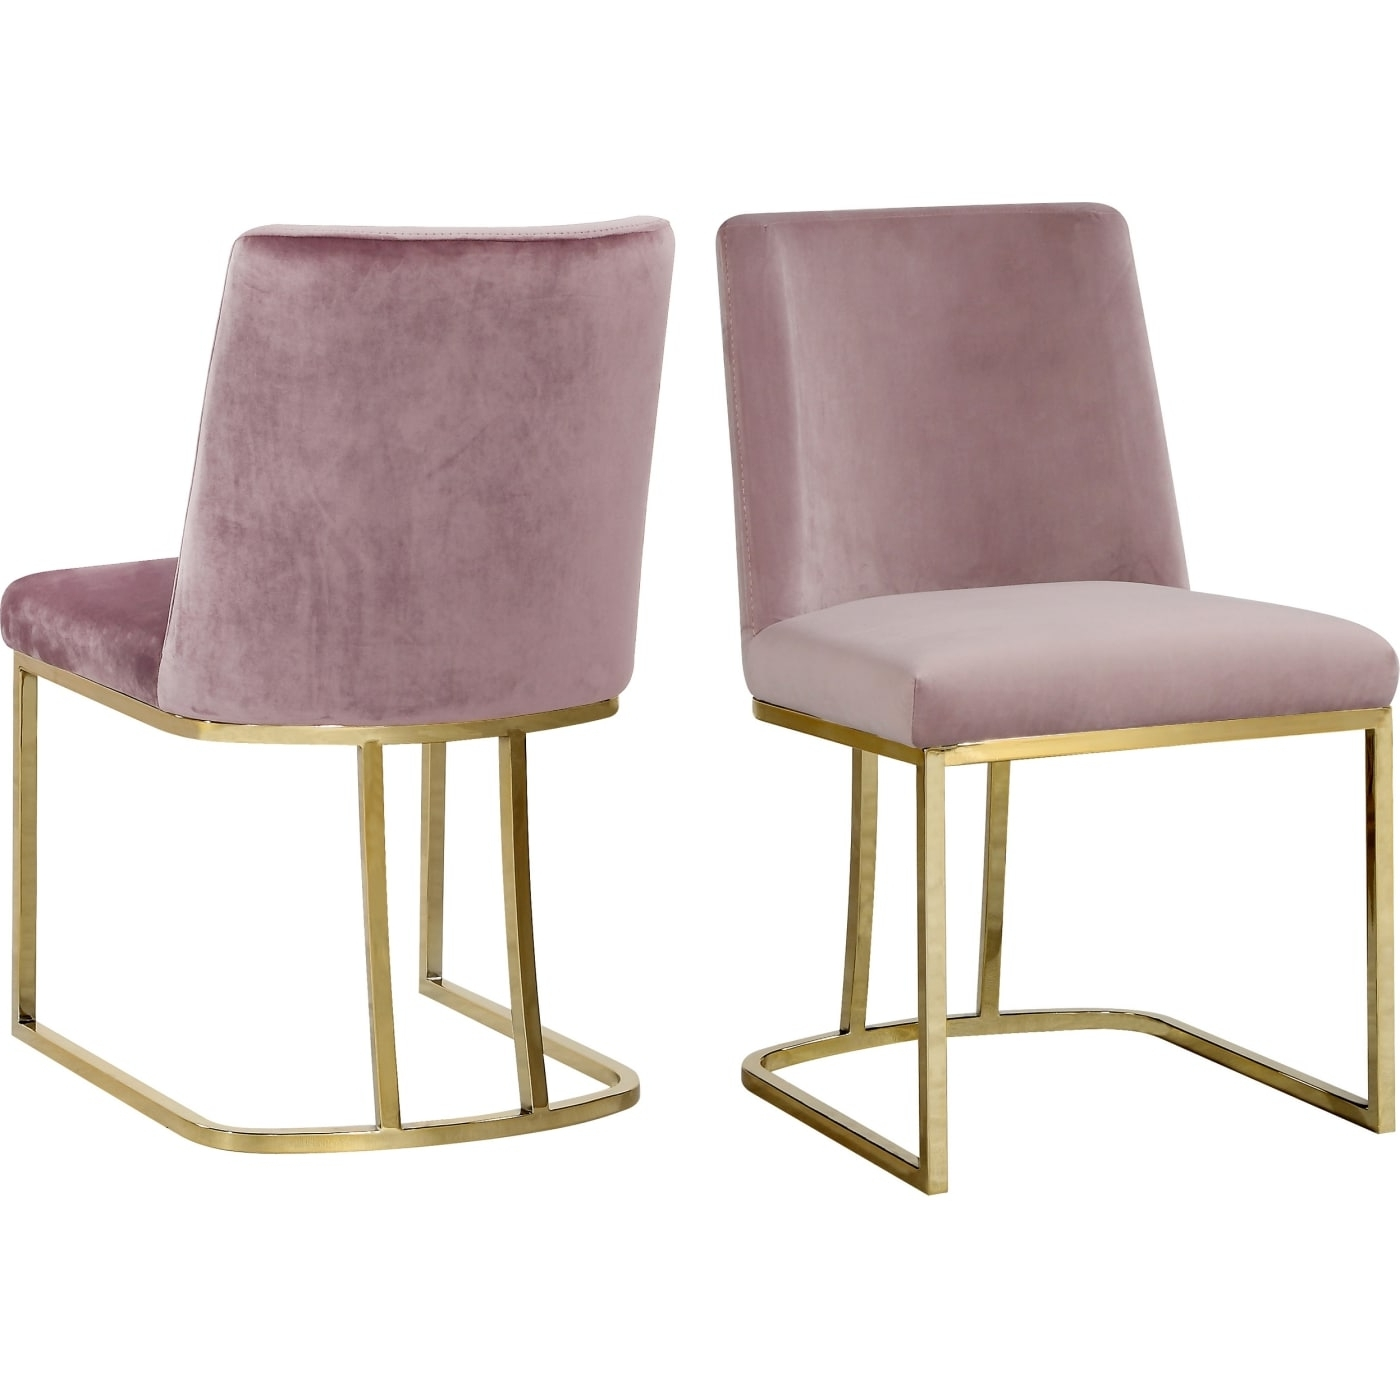 Most Popular Velvet Dining Chairs Pertaining To Meridian Heidi Pink Velvet Dining Chair – Set Of 2 & Reviews (View 10 of 25)